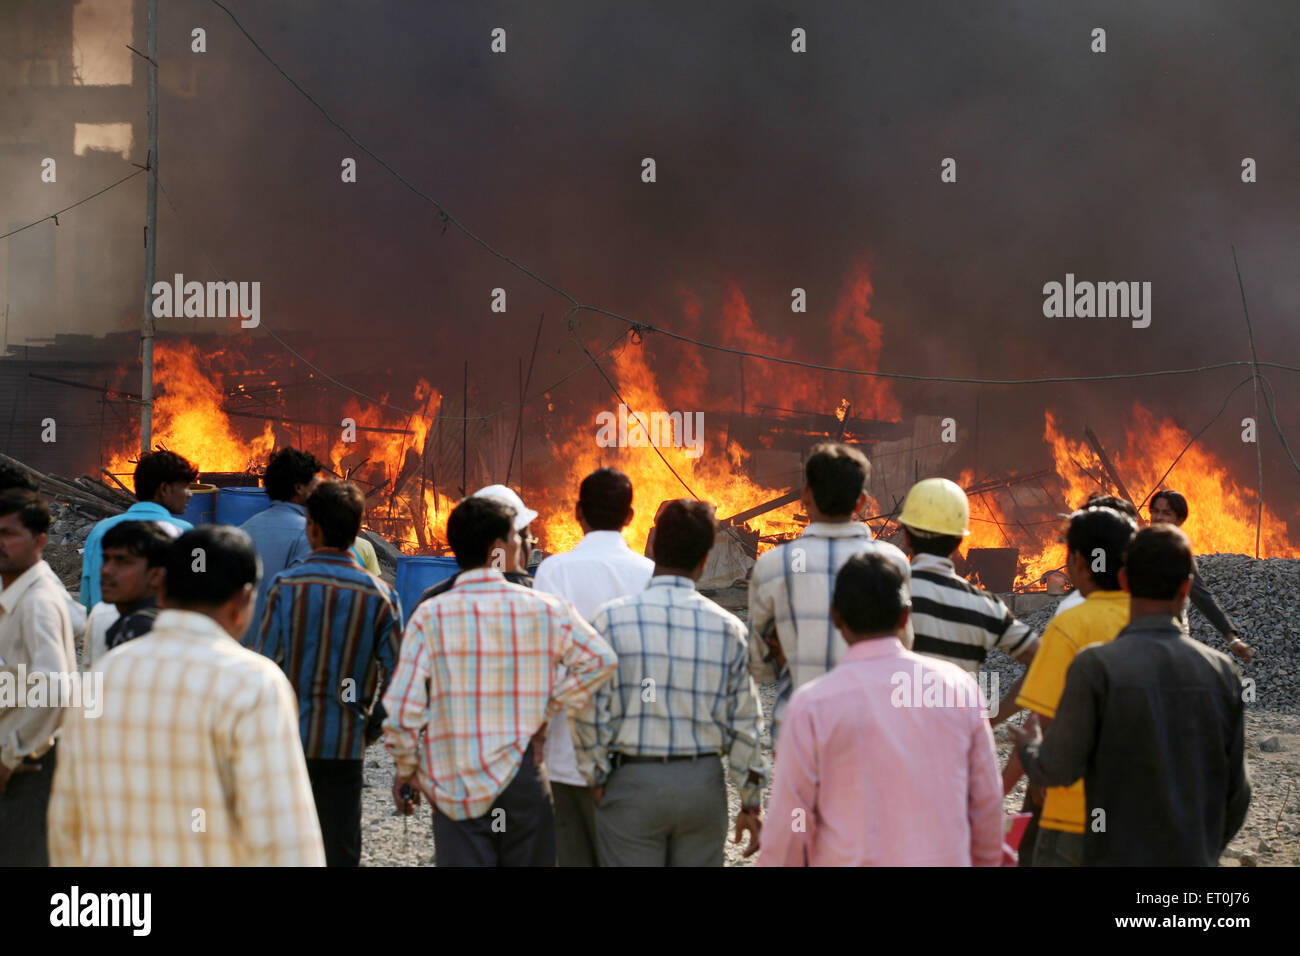 Onlookers looking at the fire at the Mhada colony in Versova ; Andheri in Bombay now Mumbai ; Maharashtra ; India - Stock Image